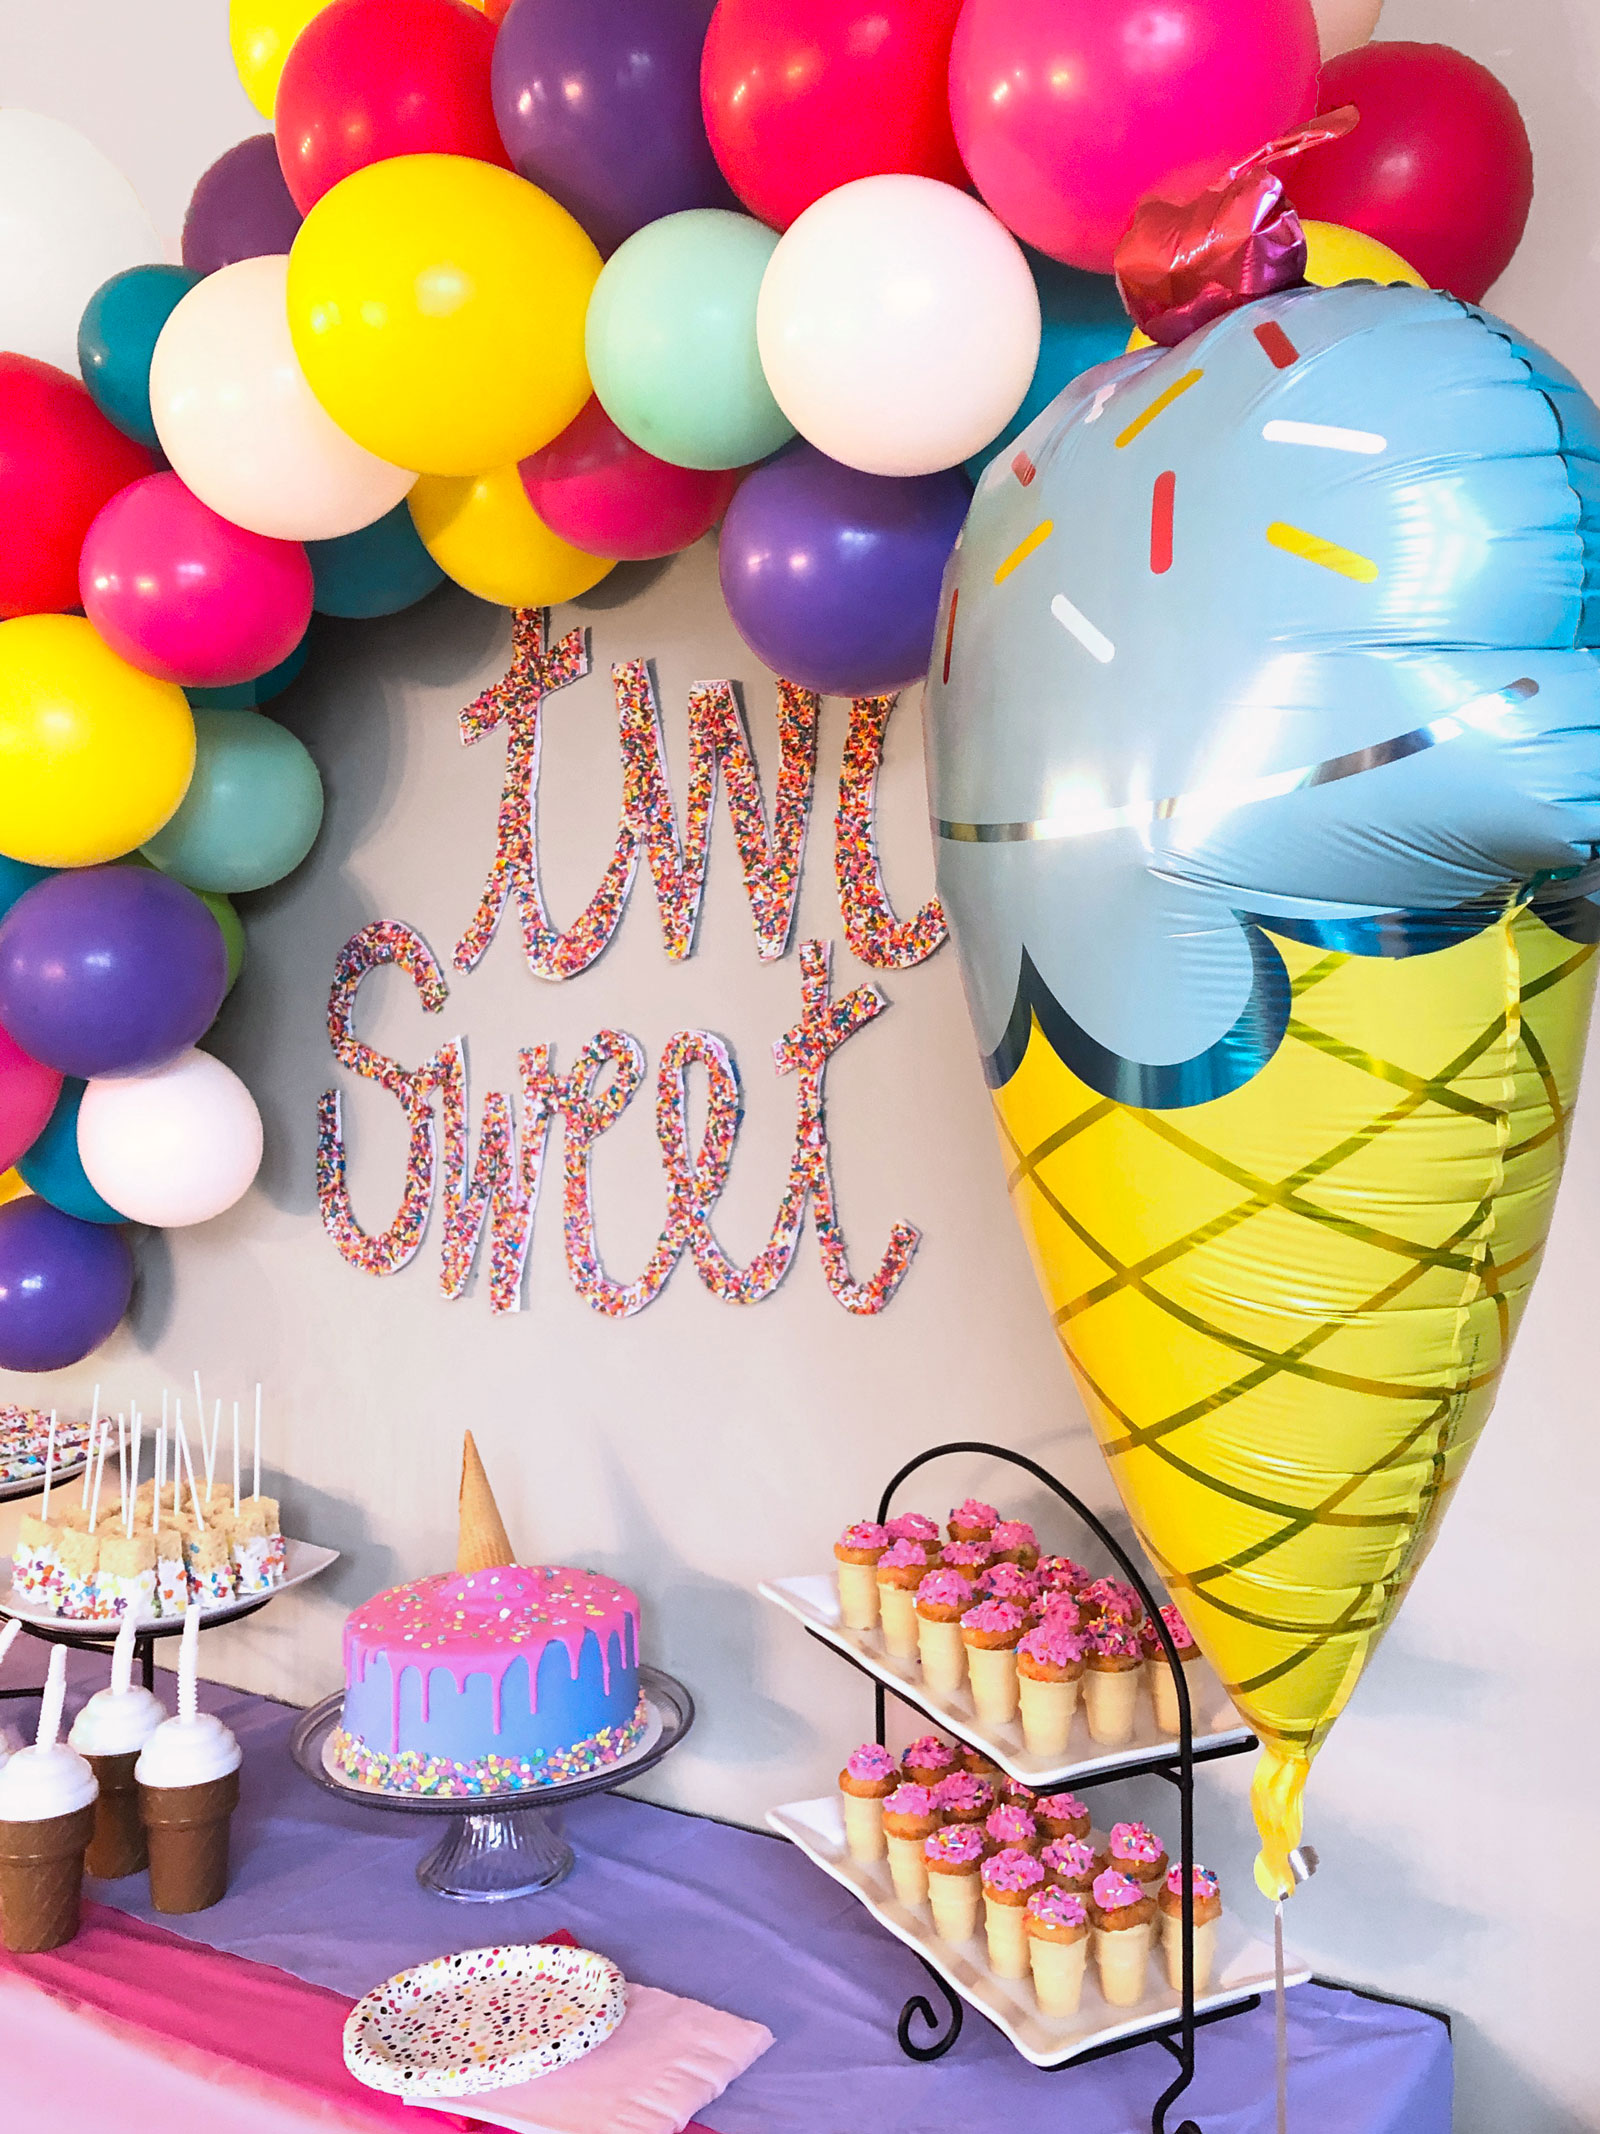 Party decorations for kid's 2nd birthday